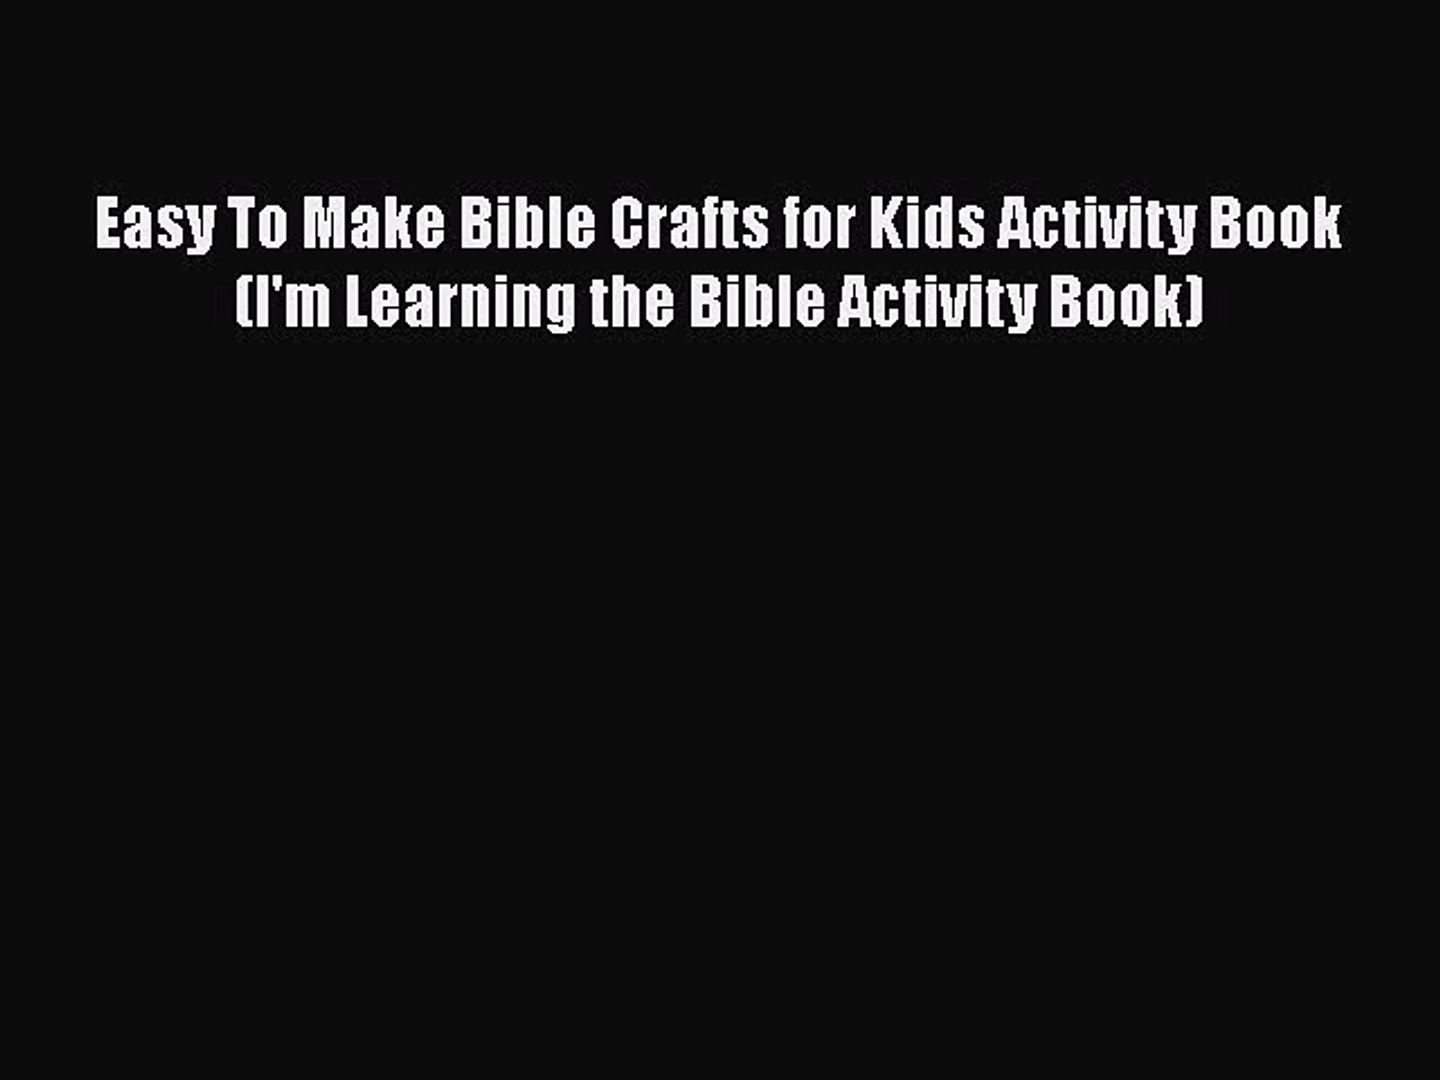 Download Easy To Make Bible Crafts for Kids Activity Book (I'm Learning the Bible Activity